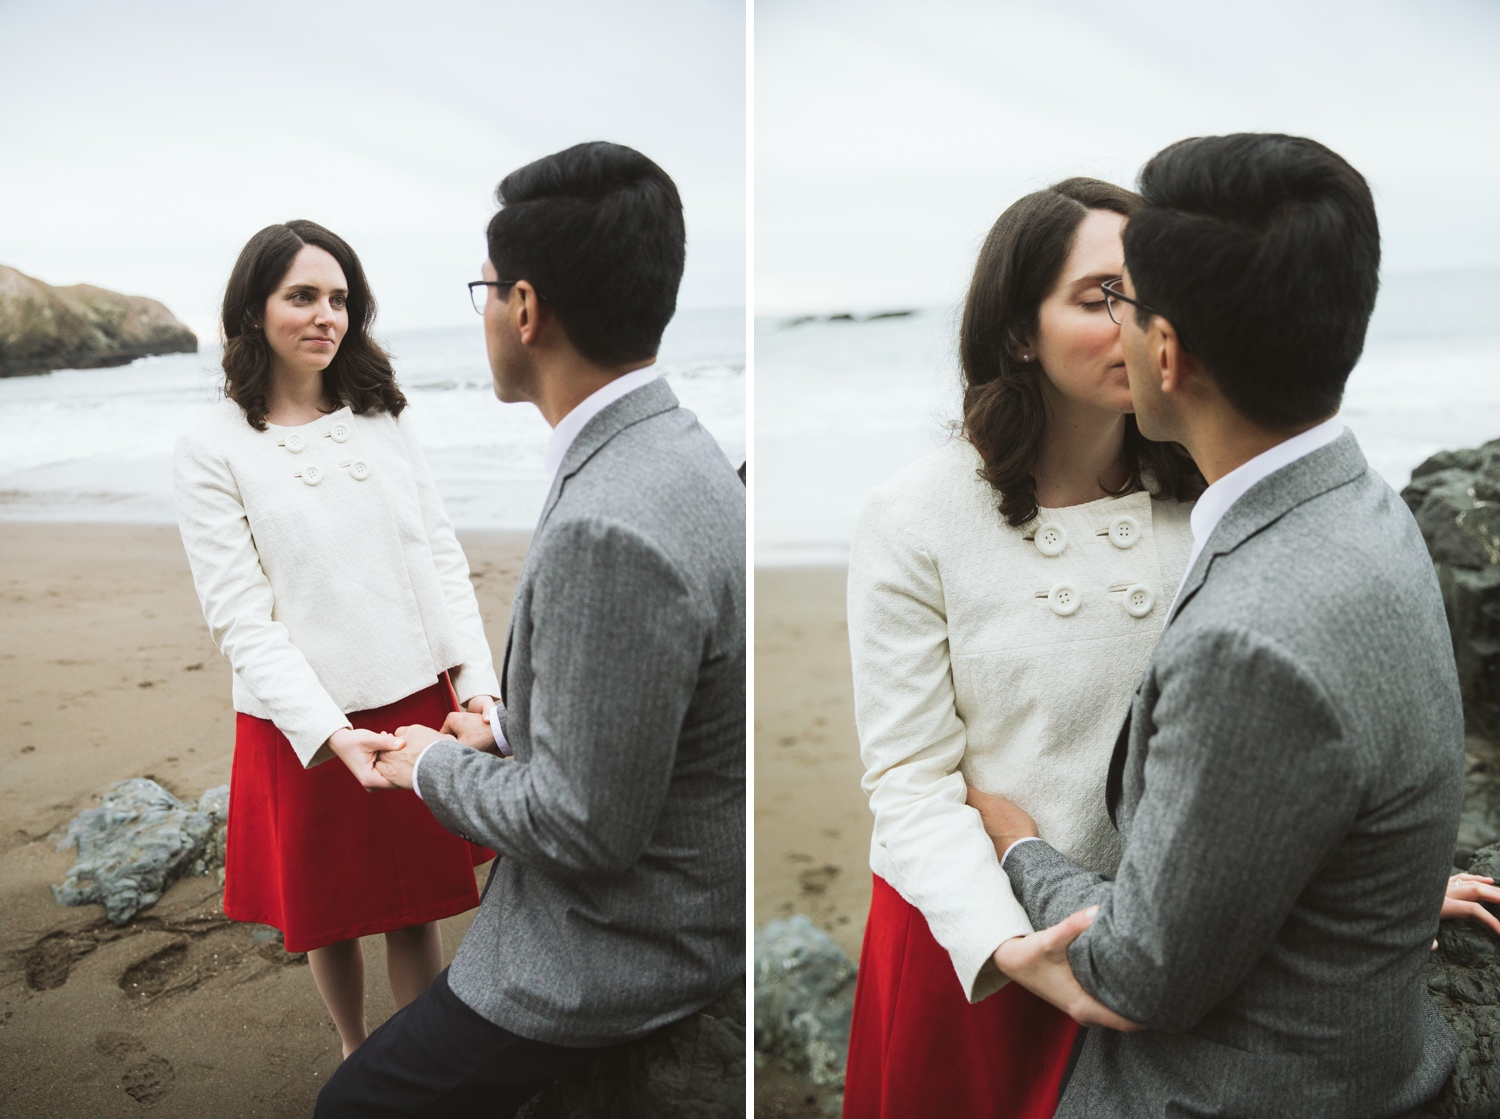 marin-headlands-rodeo-beach-engagement-elopement-photographer-1.jpg